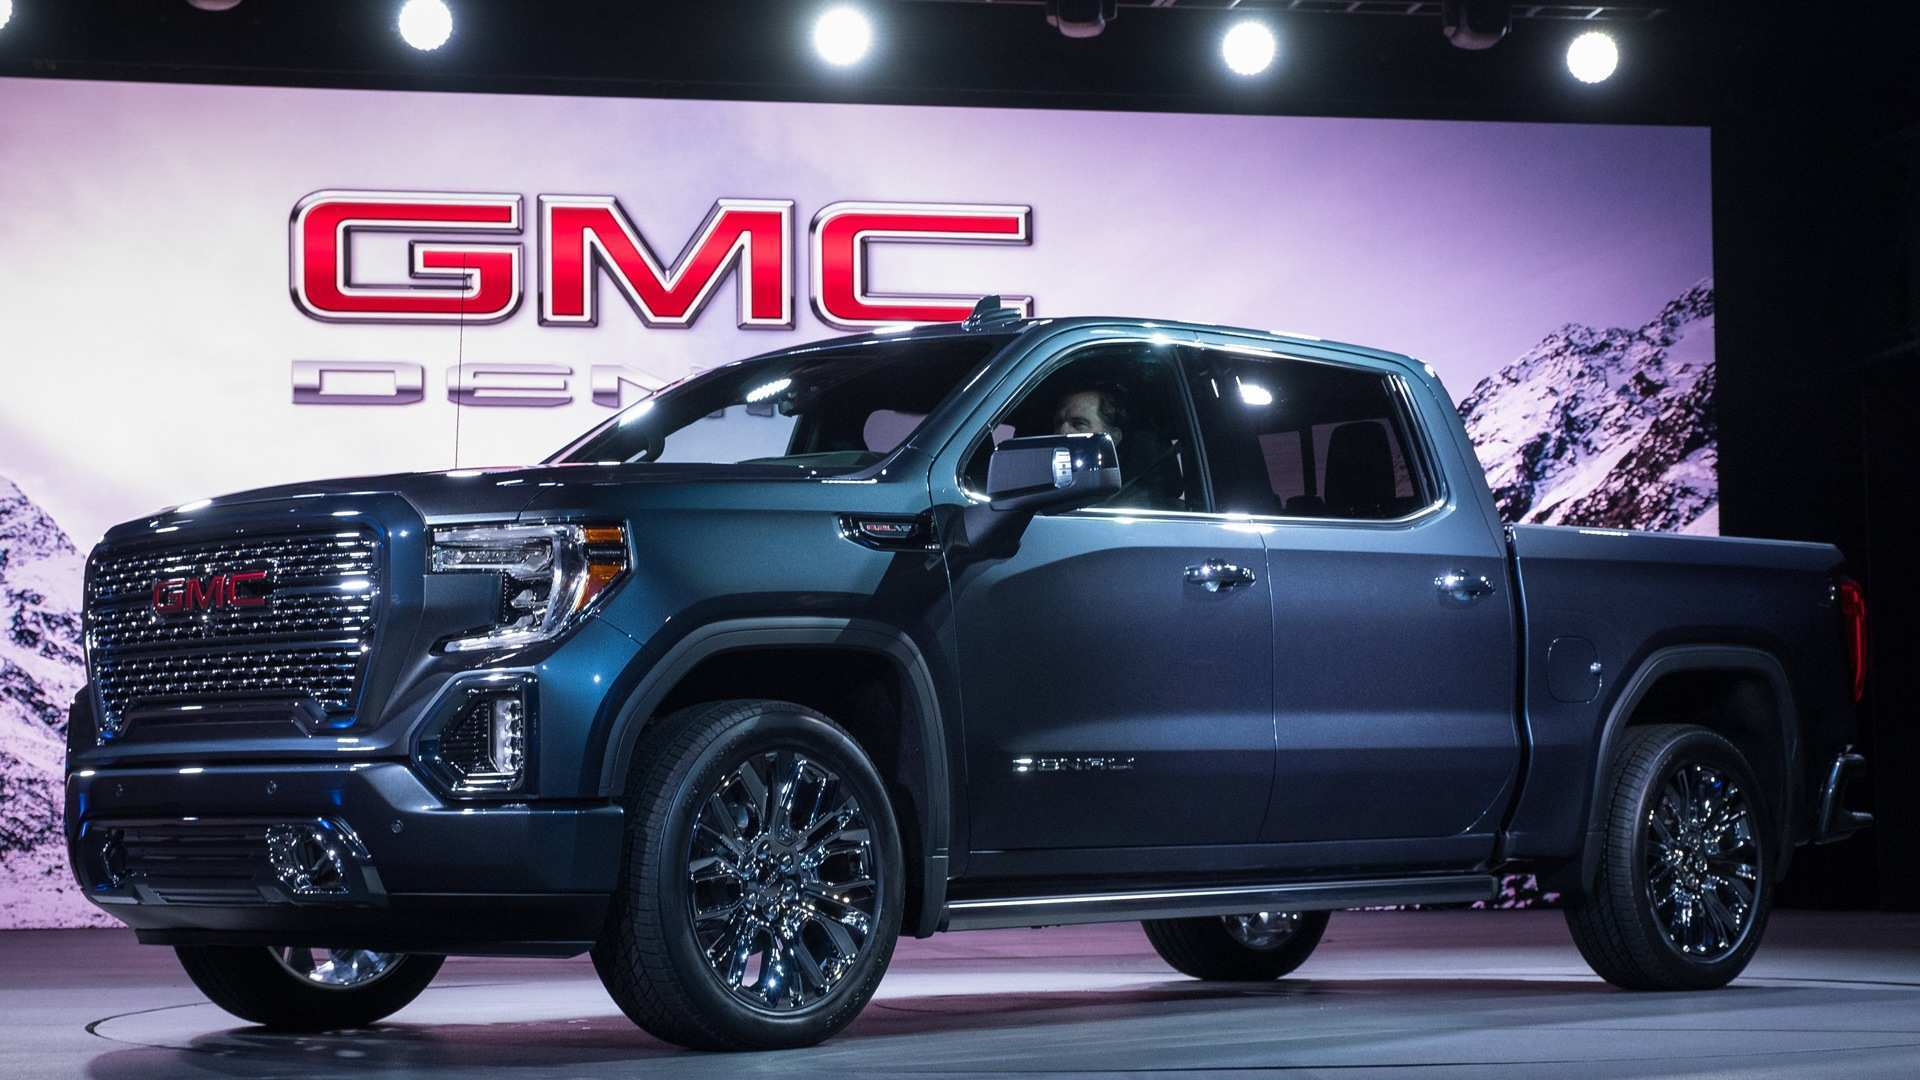 35 All New 2019 Gmc Sierra Release Date Overview for 2019 Gmc Sierra Release Date